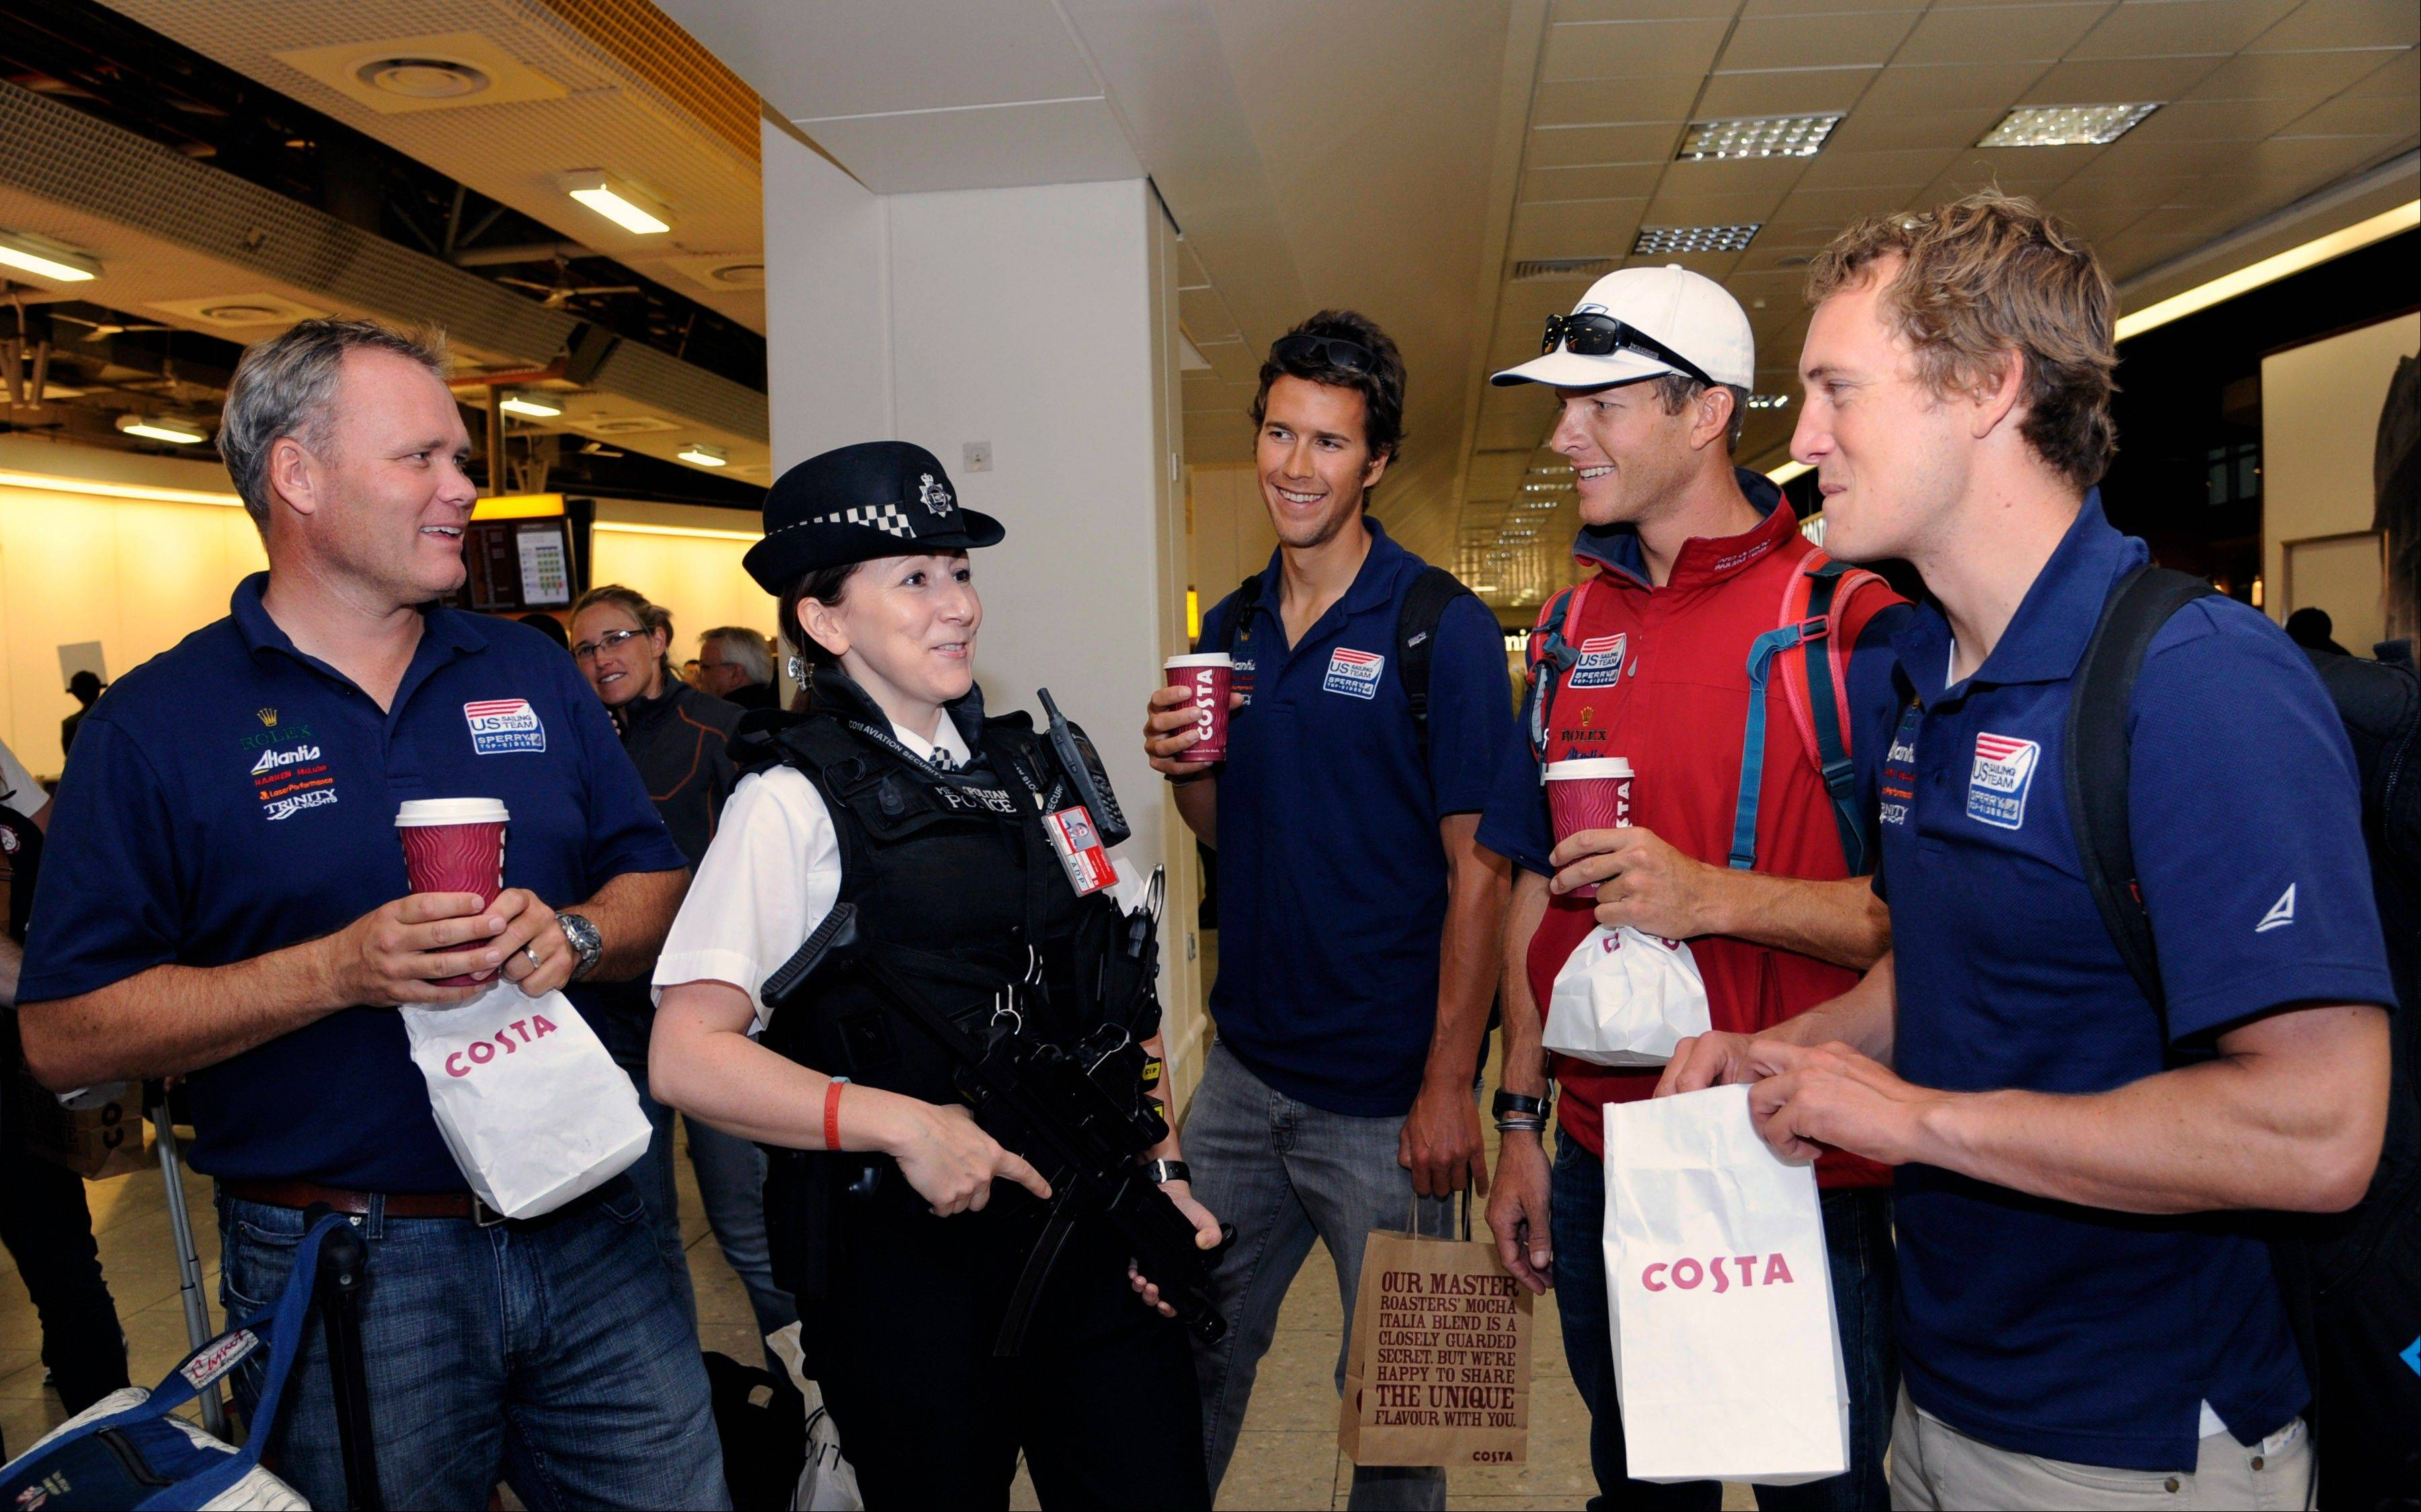 It's smooth sailing for these smiling members of the U.S. Olympic sailing team as they chat with a British police officer following their arrival at Heathrow Airport in London.